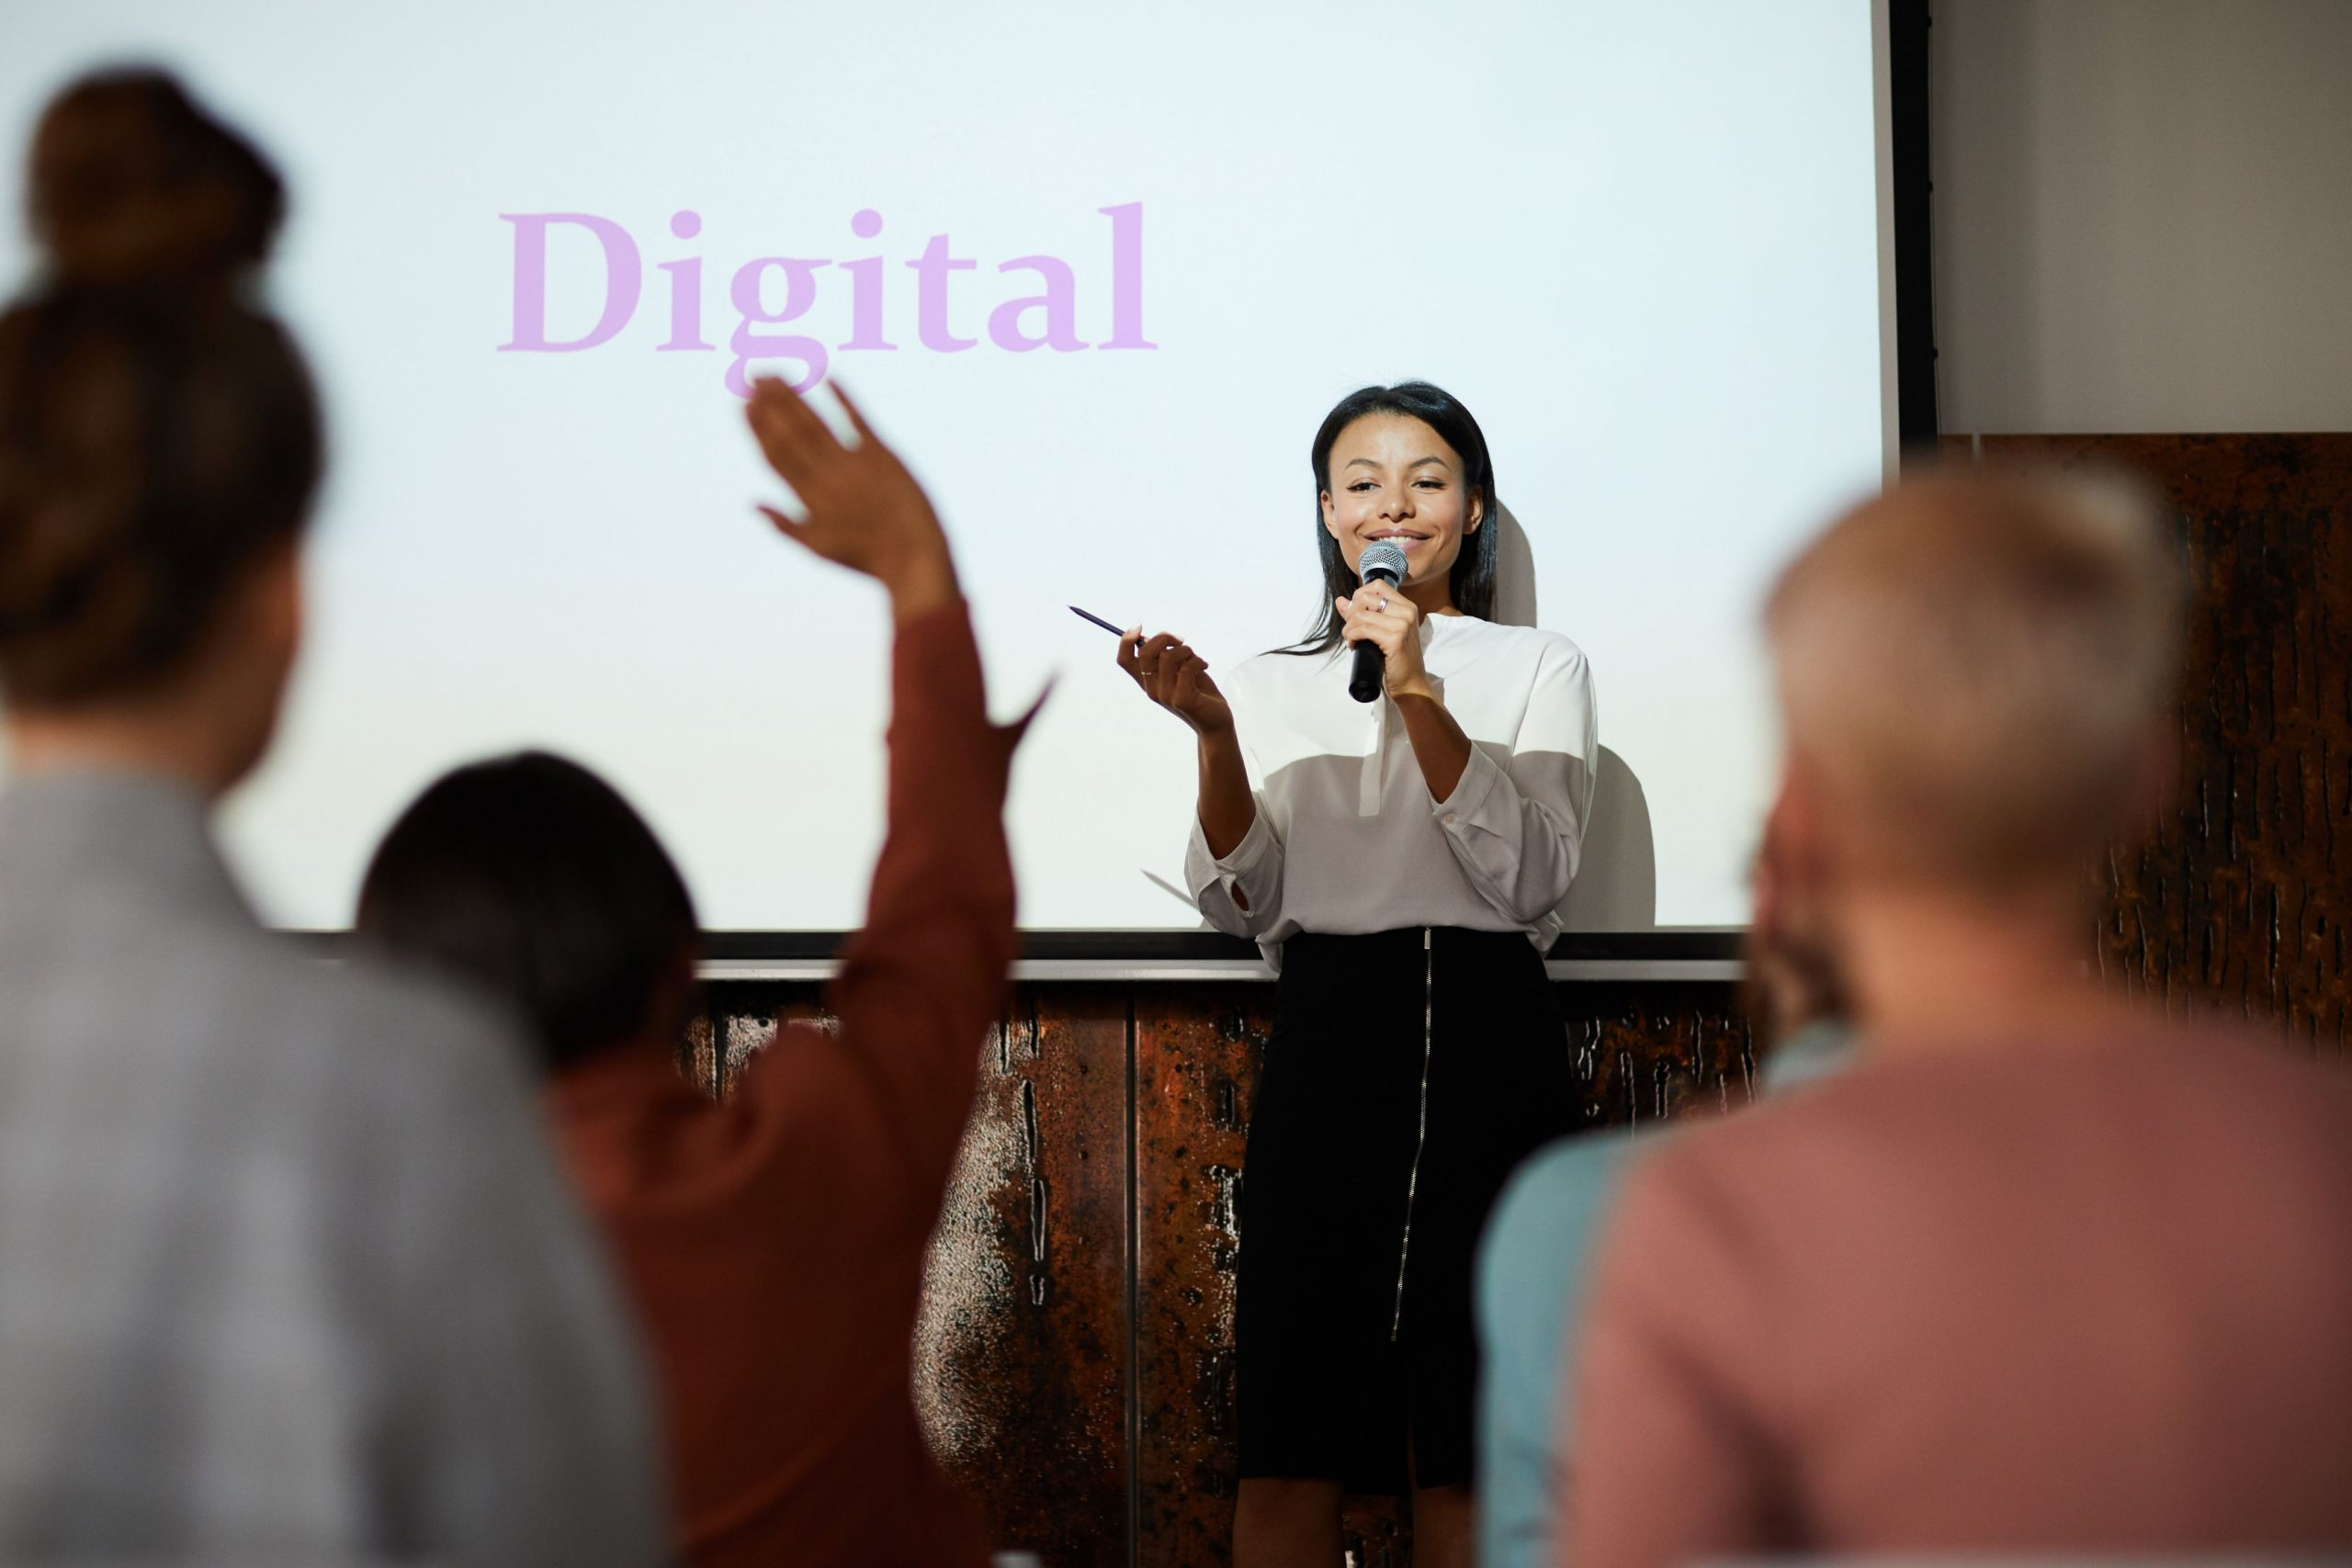 Starting your Career in the Digital field to Business- Innovate or Replicate?